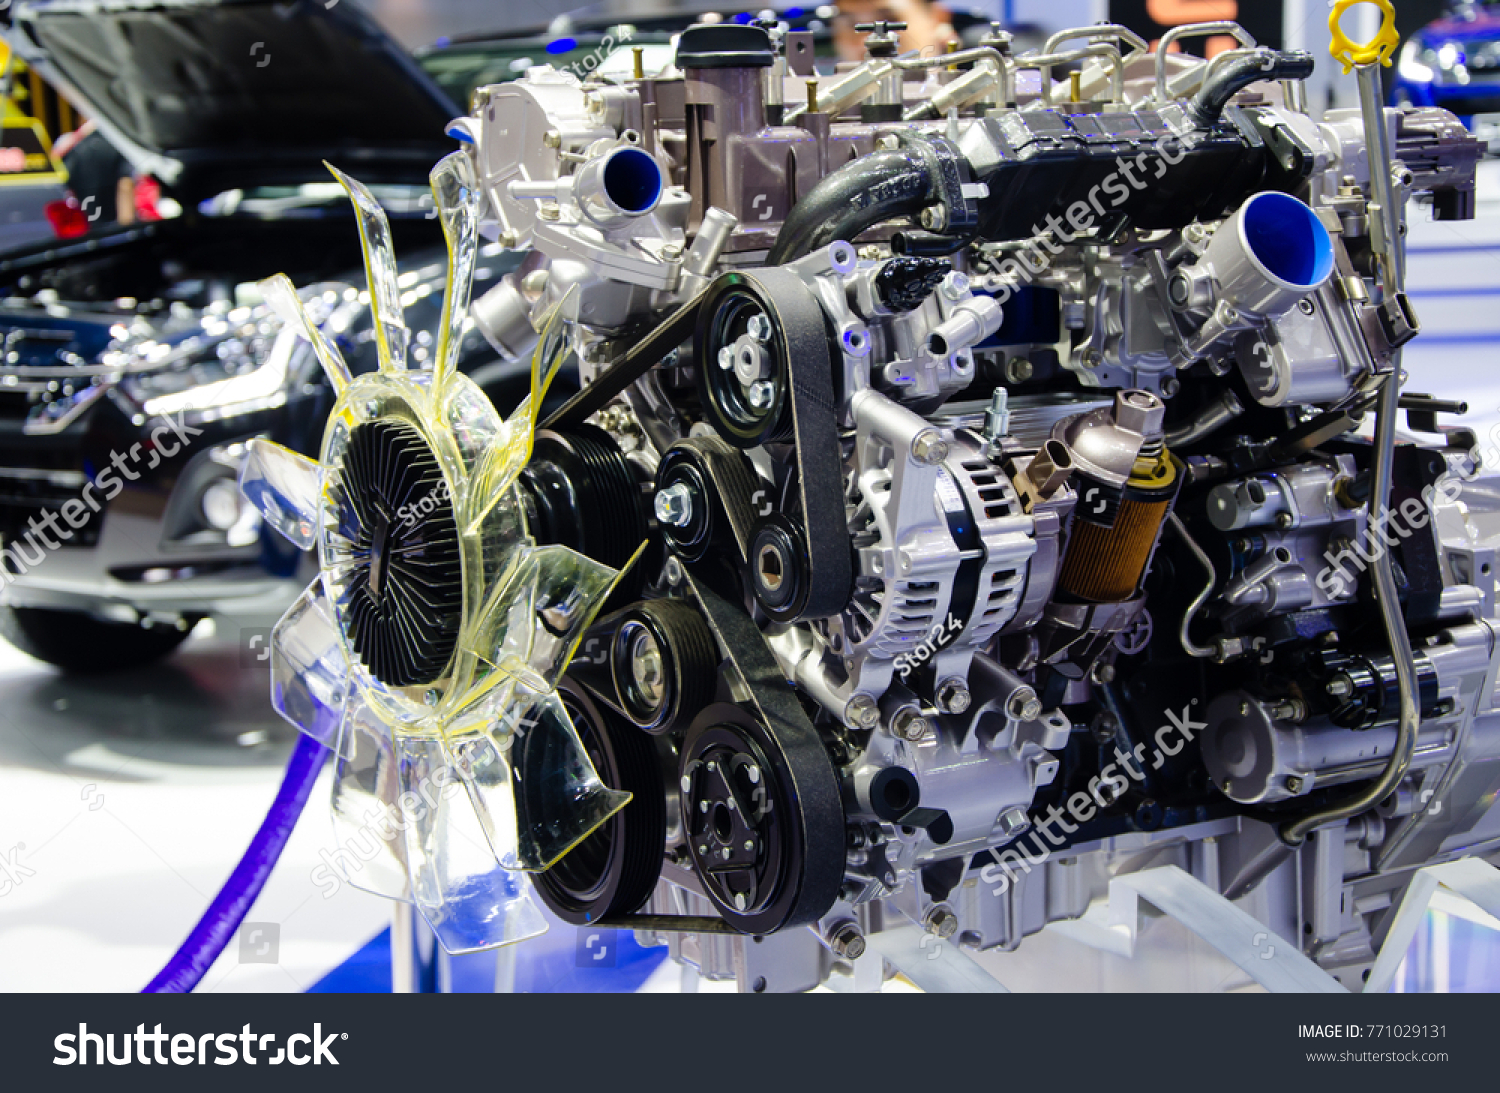 Automobile Engineering For Car Engine Part Modern Powerful Turbo Stock Photo Edit Now